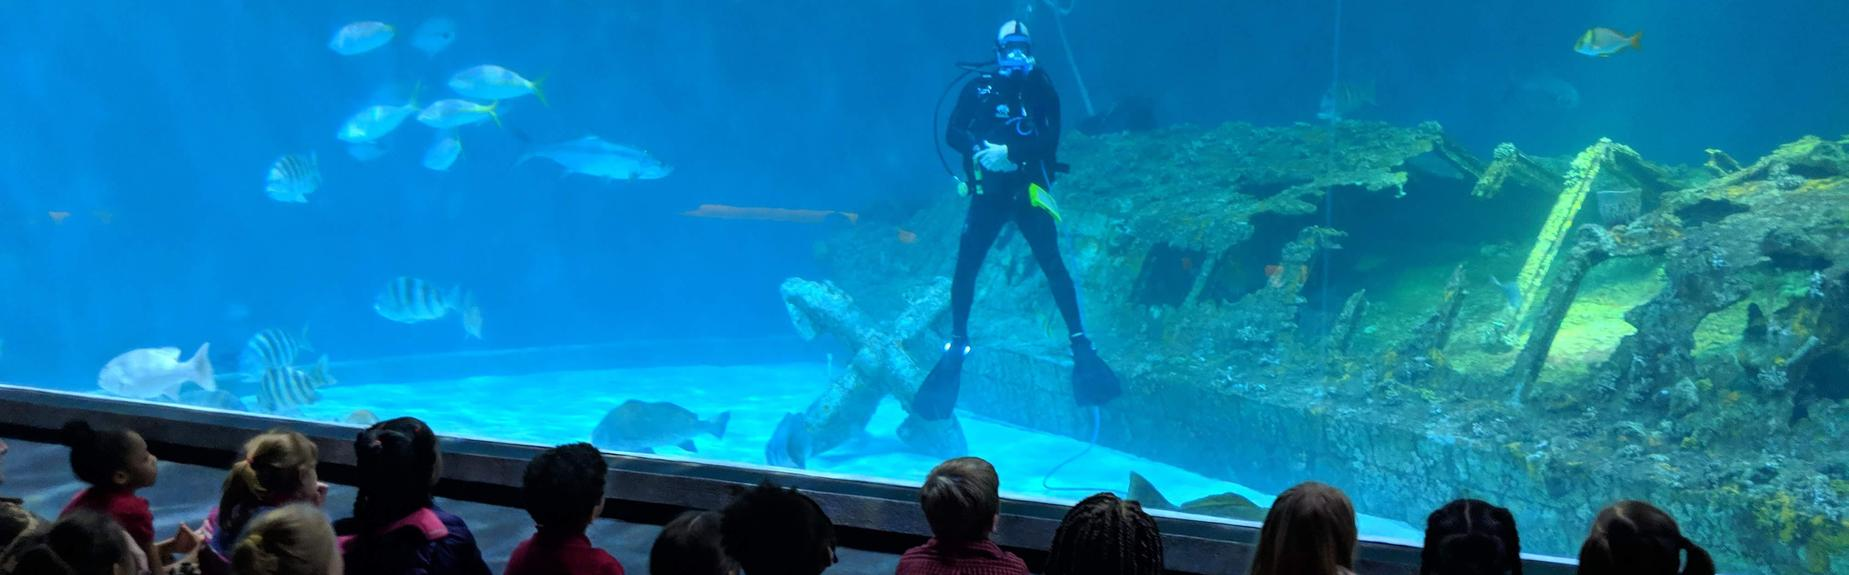 students sitting on floor in aquarium watching a diver in a tank